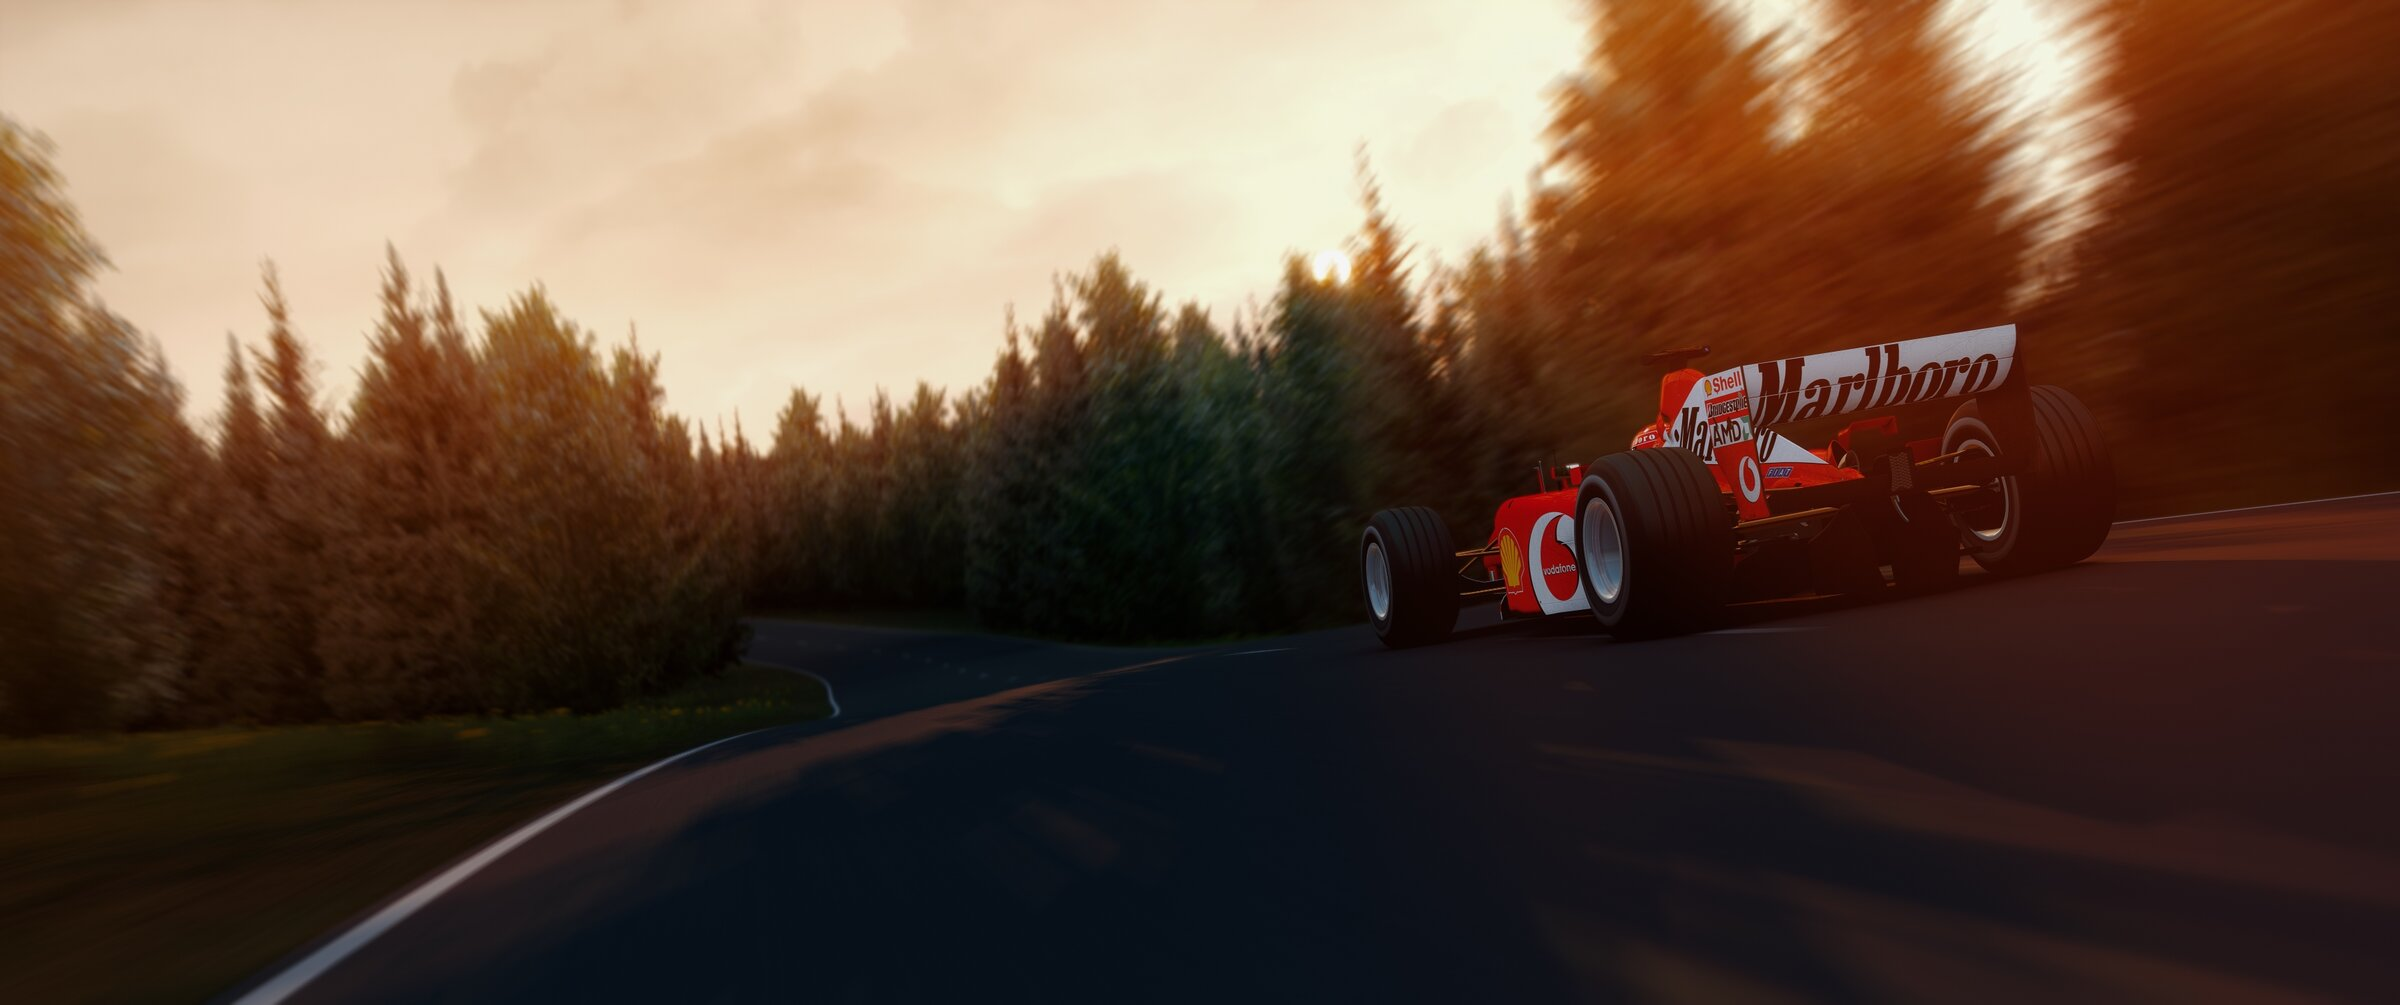 Screenshot_ferrari_f2002_evo_triangle_20-6-120-1-52-53.jpg